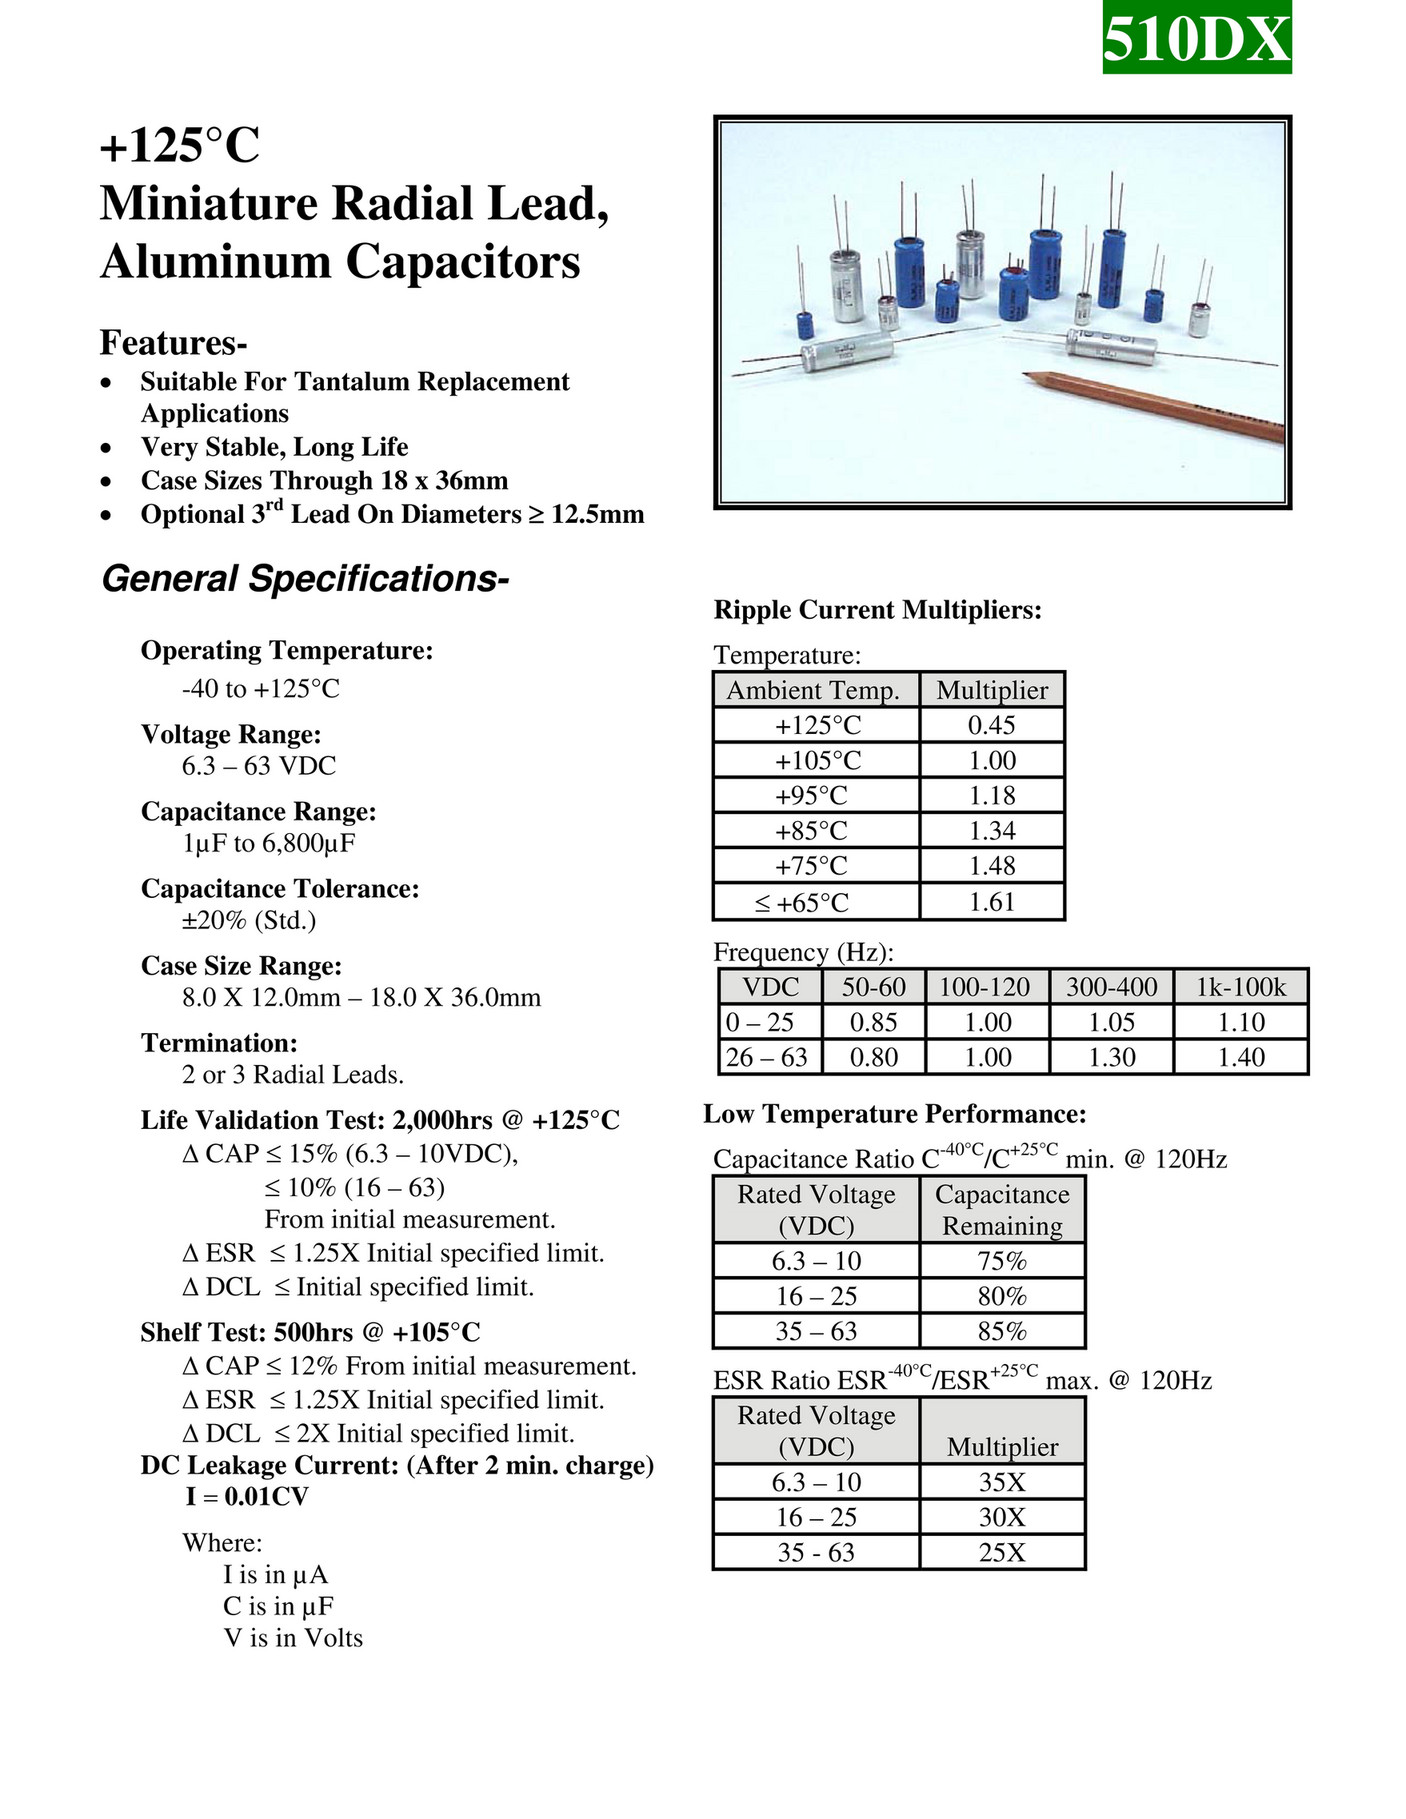 CAPACITOR FAKS - BMI 510DX Series Aluminum Capacitors - Page 1